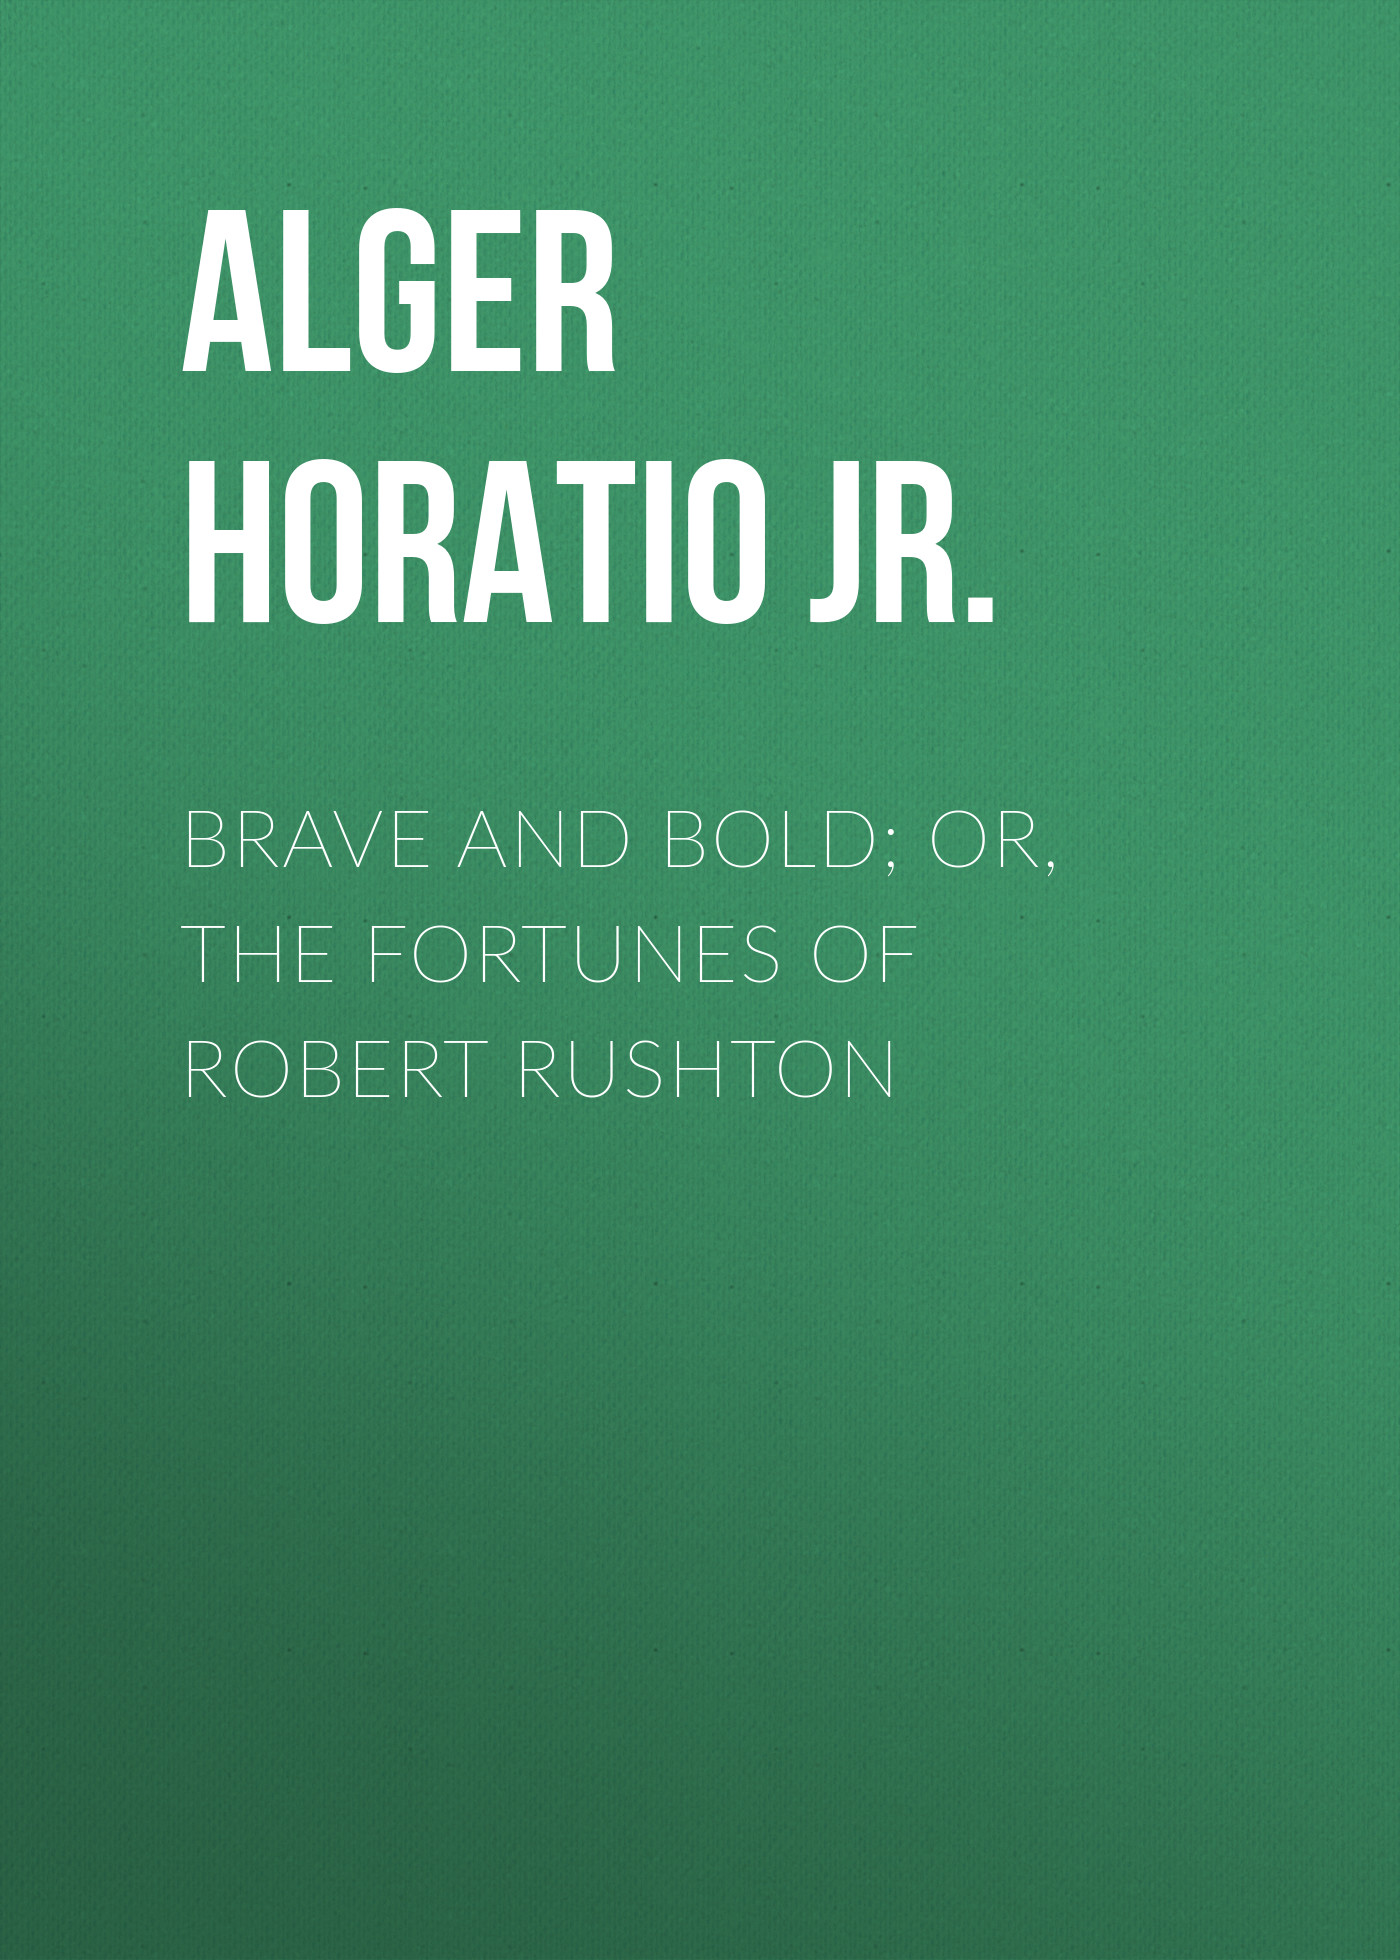 лучшая цена Alger Horatio Jr. Brave and Bold; Or, The Fortunes of Robert Rushton